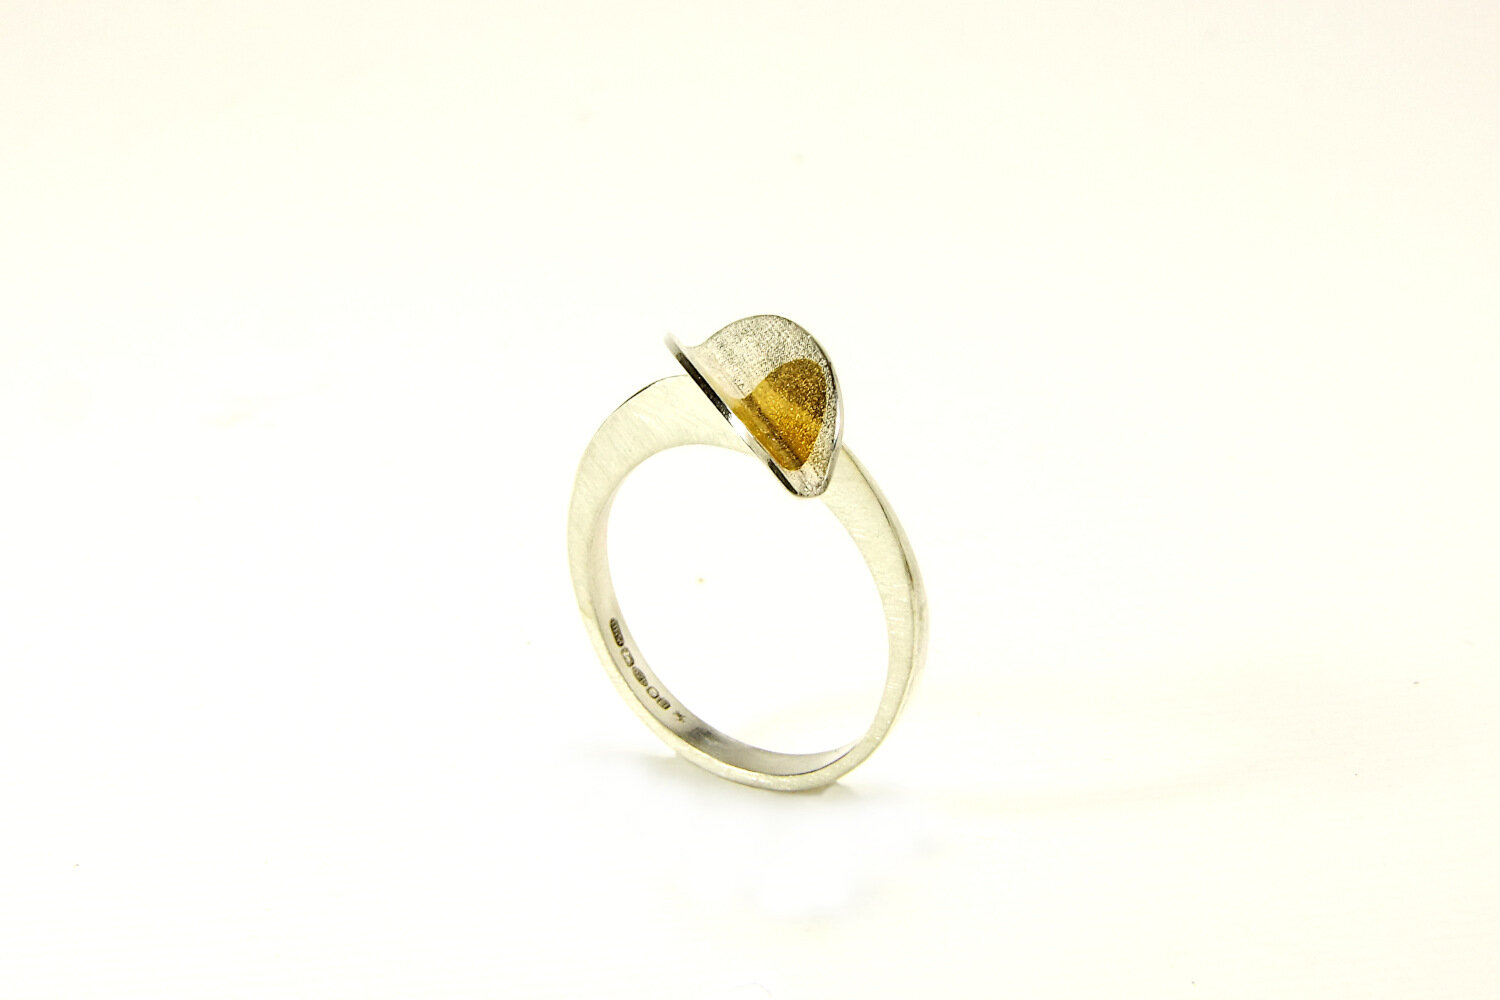 forged-silver-gold-ring-hbm105-8640.JPG